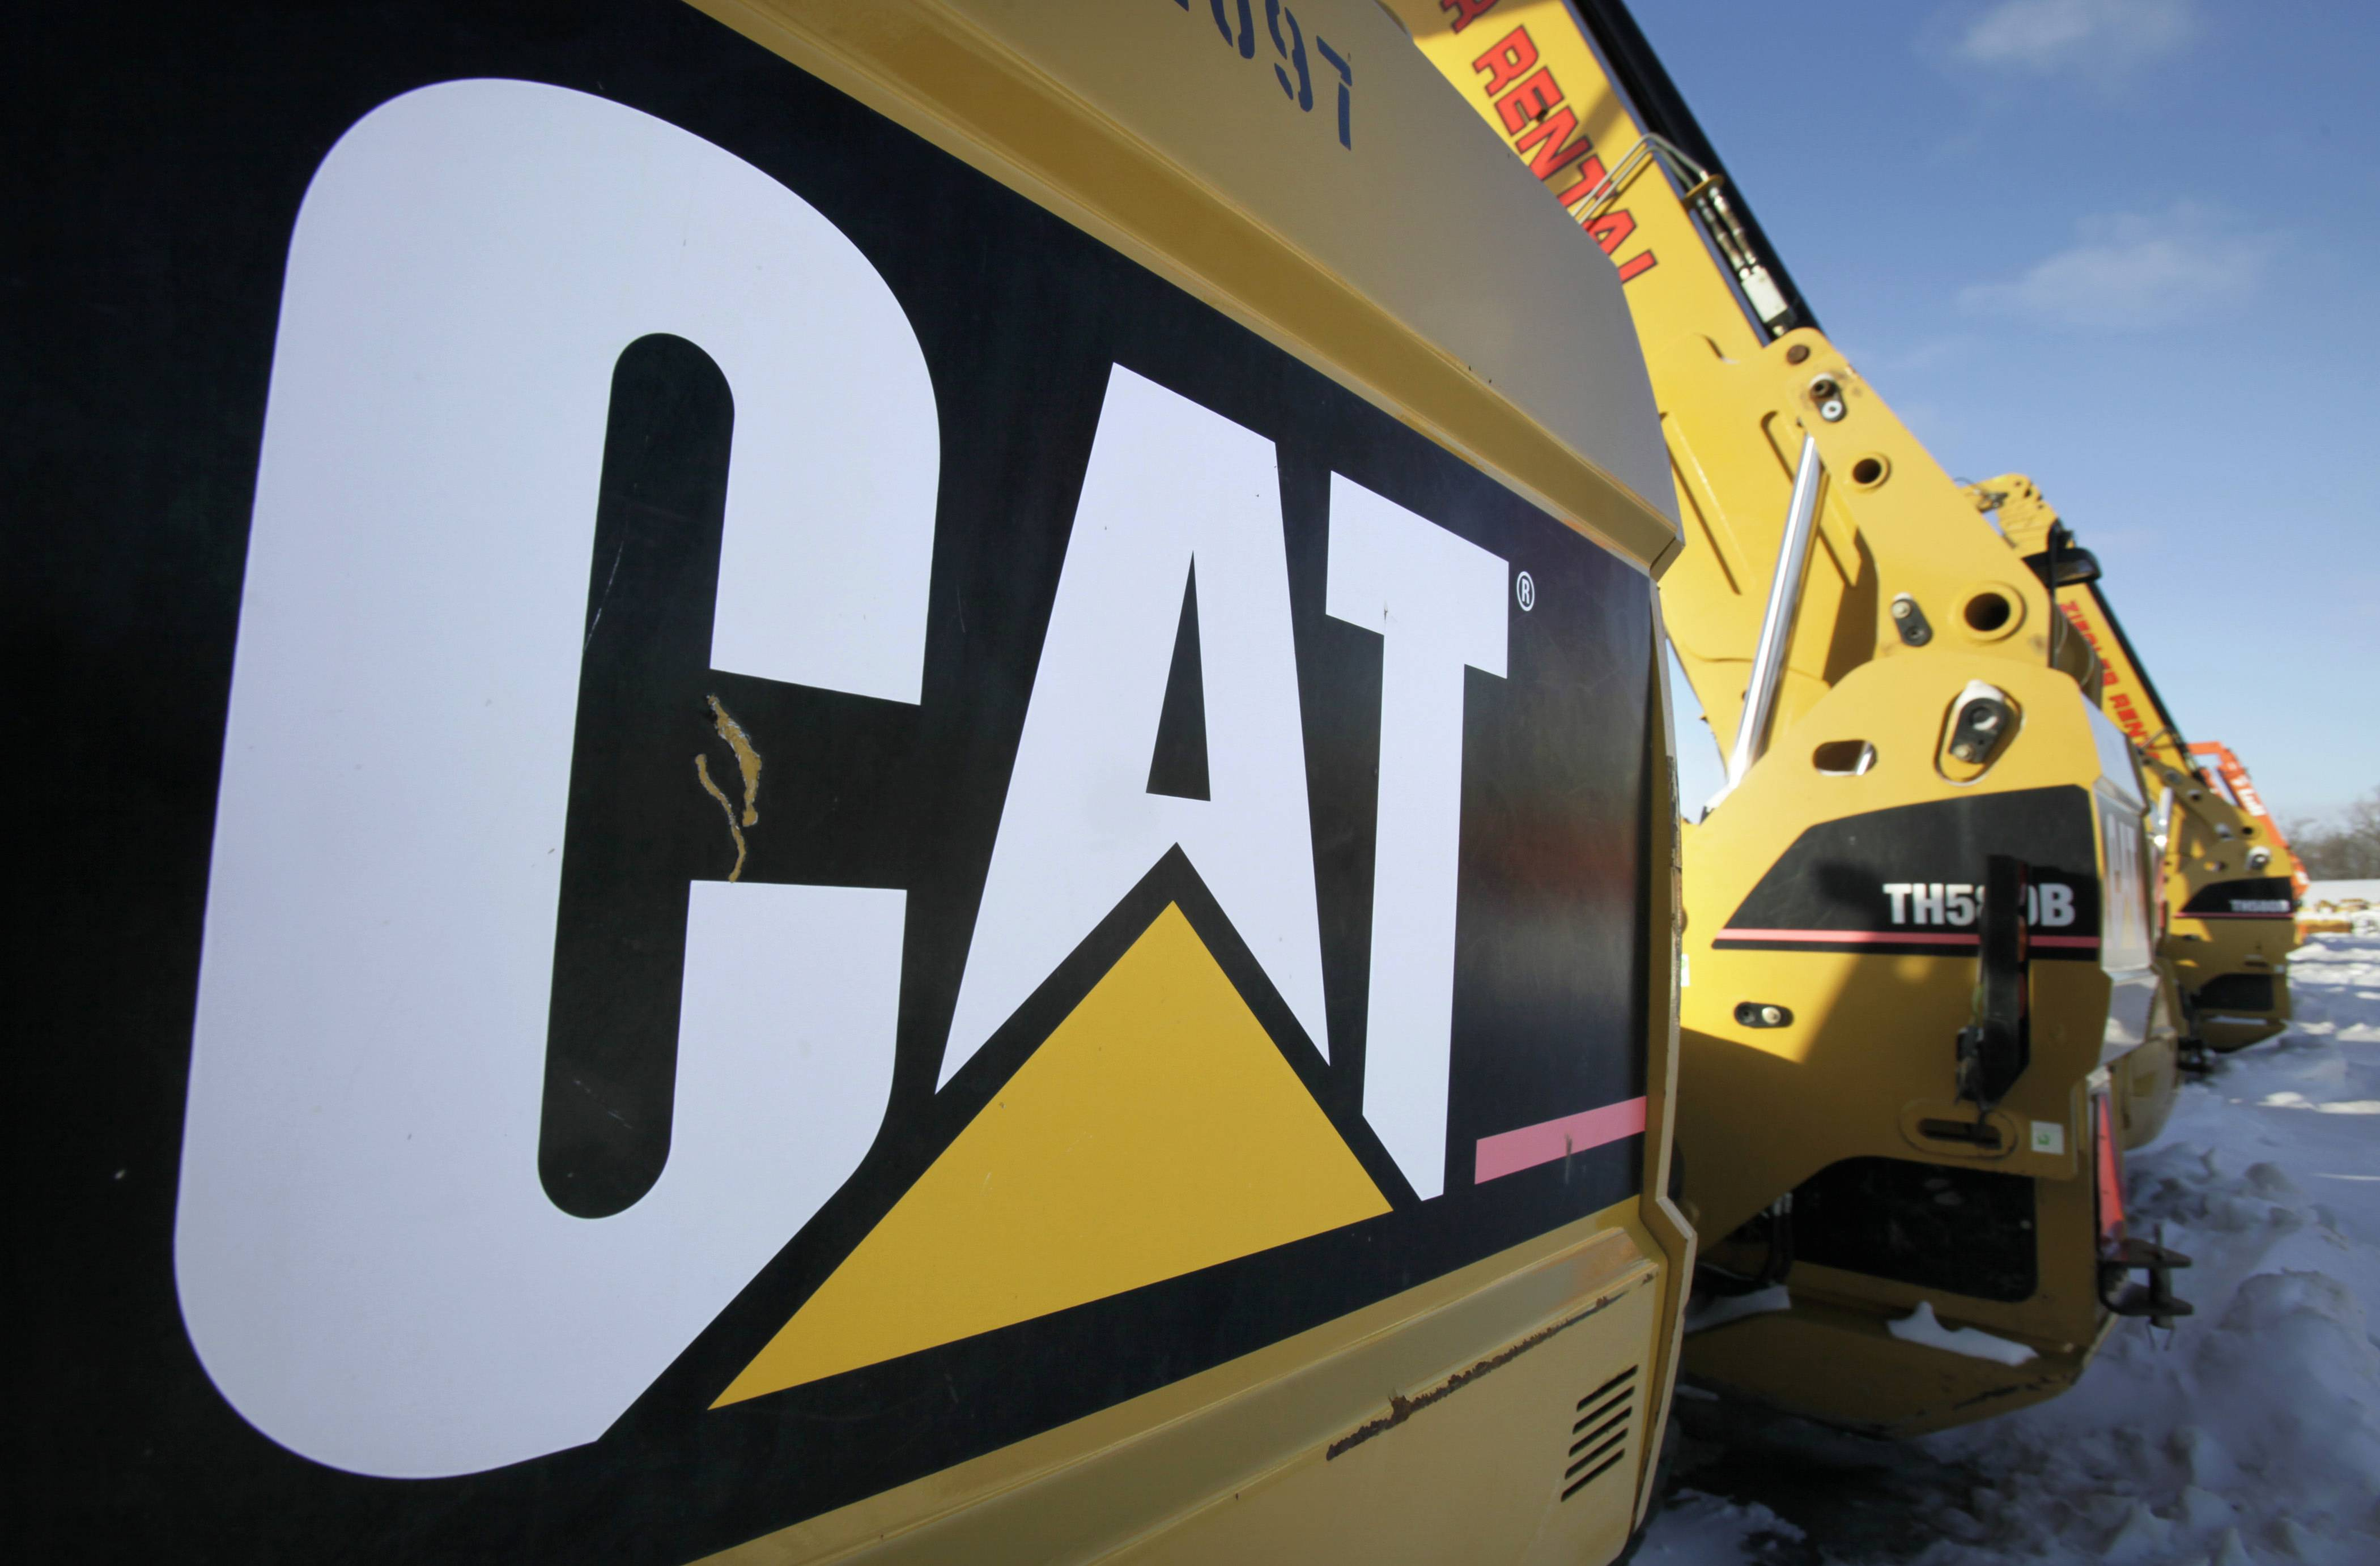 Manufacturers including Peoria-based Caterpillar are trying everything from remote-access technology to driverless trucks to revive slumping sales and adapt to changing markets.